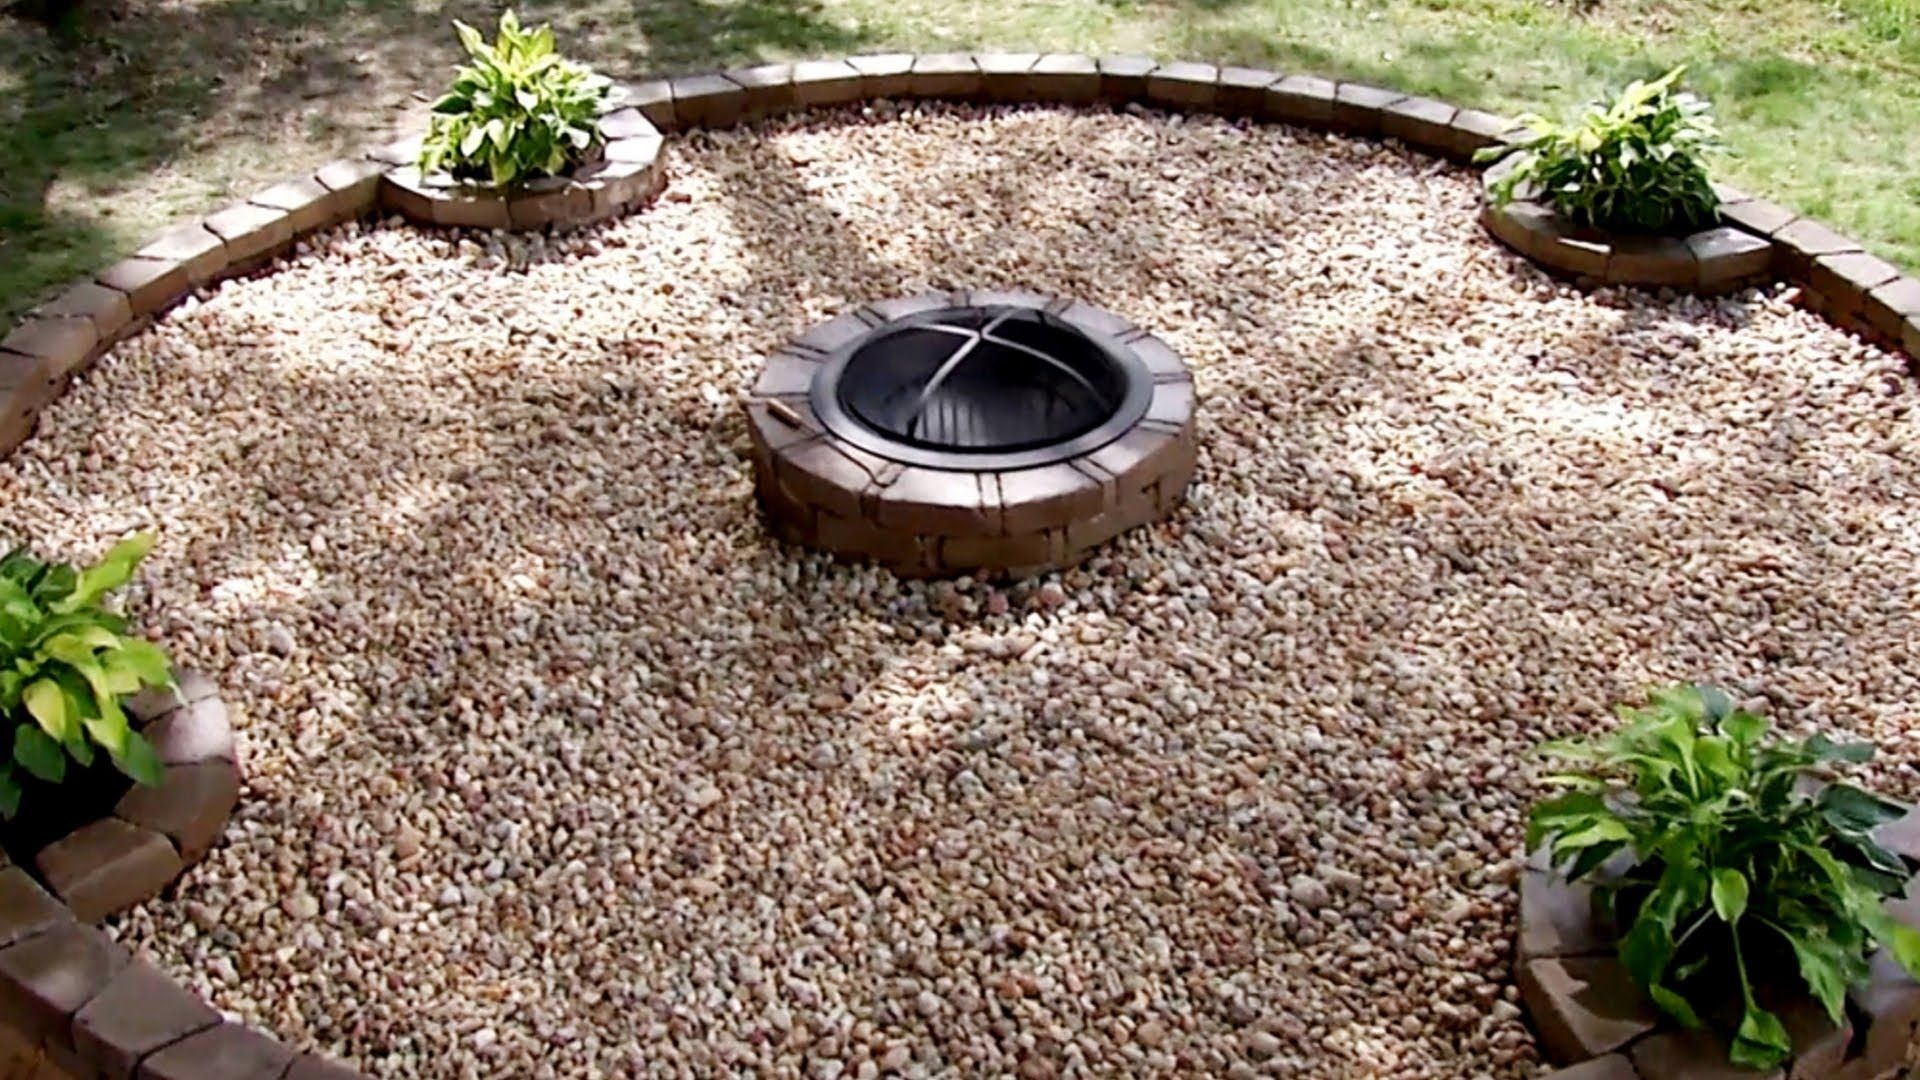 Tips for building a backyard fire pit for your home diy network tips for building a backyard fire pit for your home diy network solutioingenieria Choice Image